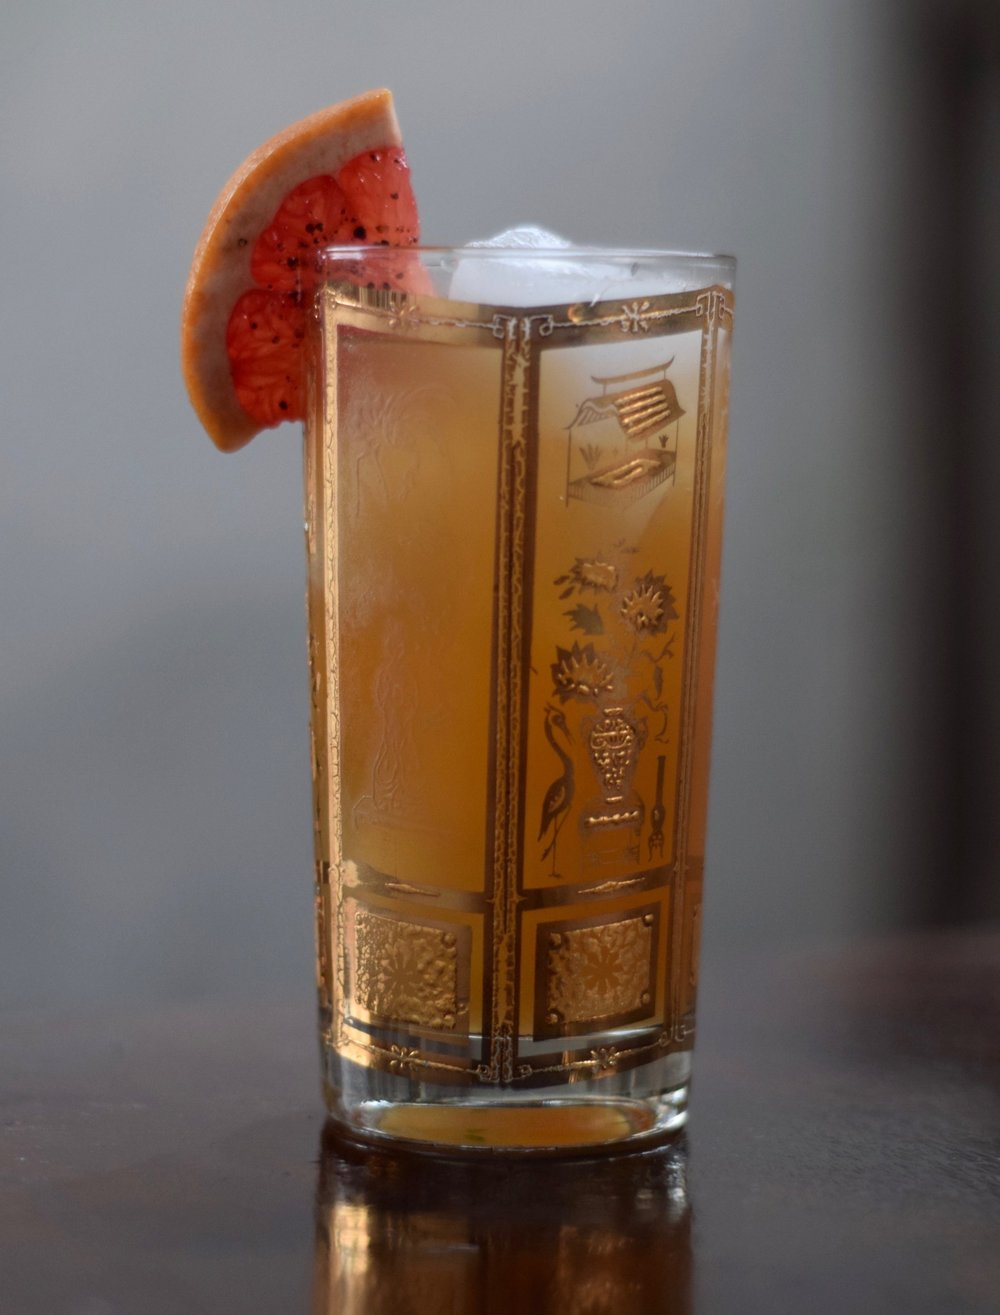 PALOMITA - 1 oz nostrum grapefruit piloncillo chipotle shrub1 oz fresh lime juice1/2 oz agave nectar2 dashes angostura bitters (optional)soda waterdirections: shake first three ingredients with ice.top with soda and strain over fresh ice.